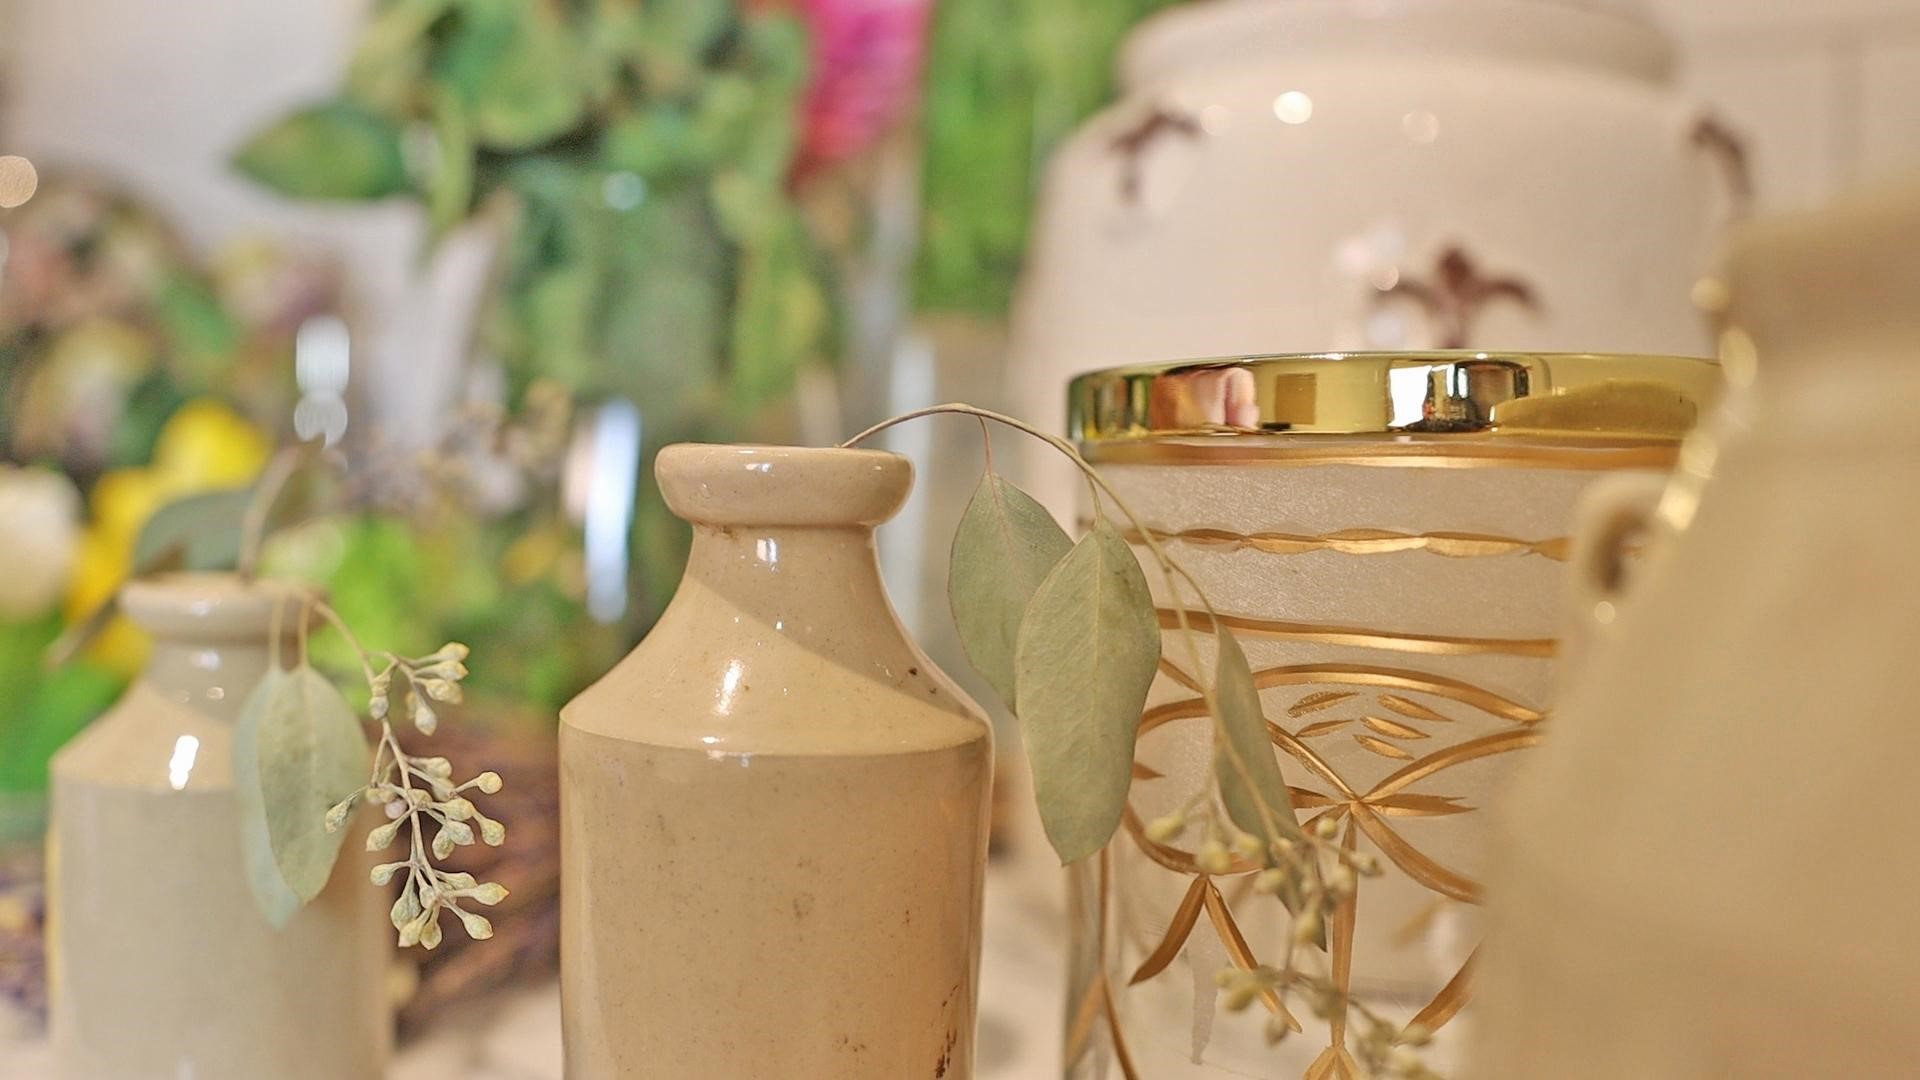 Adding eucalyptus stems in small vases for an effortless, rustic feel